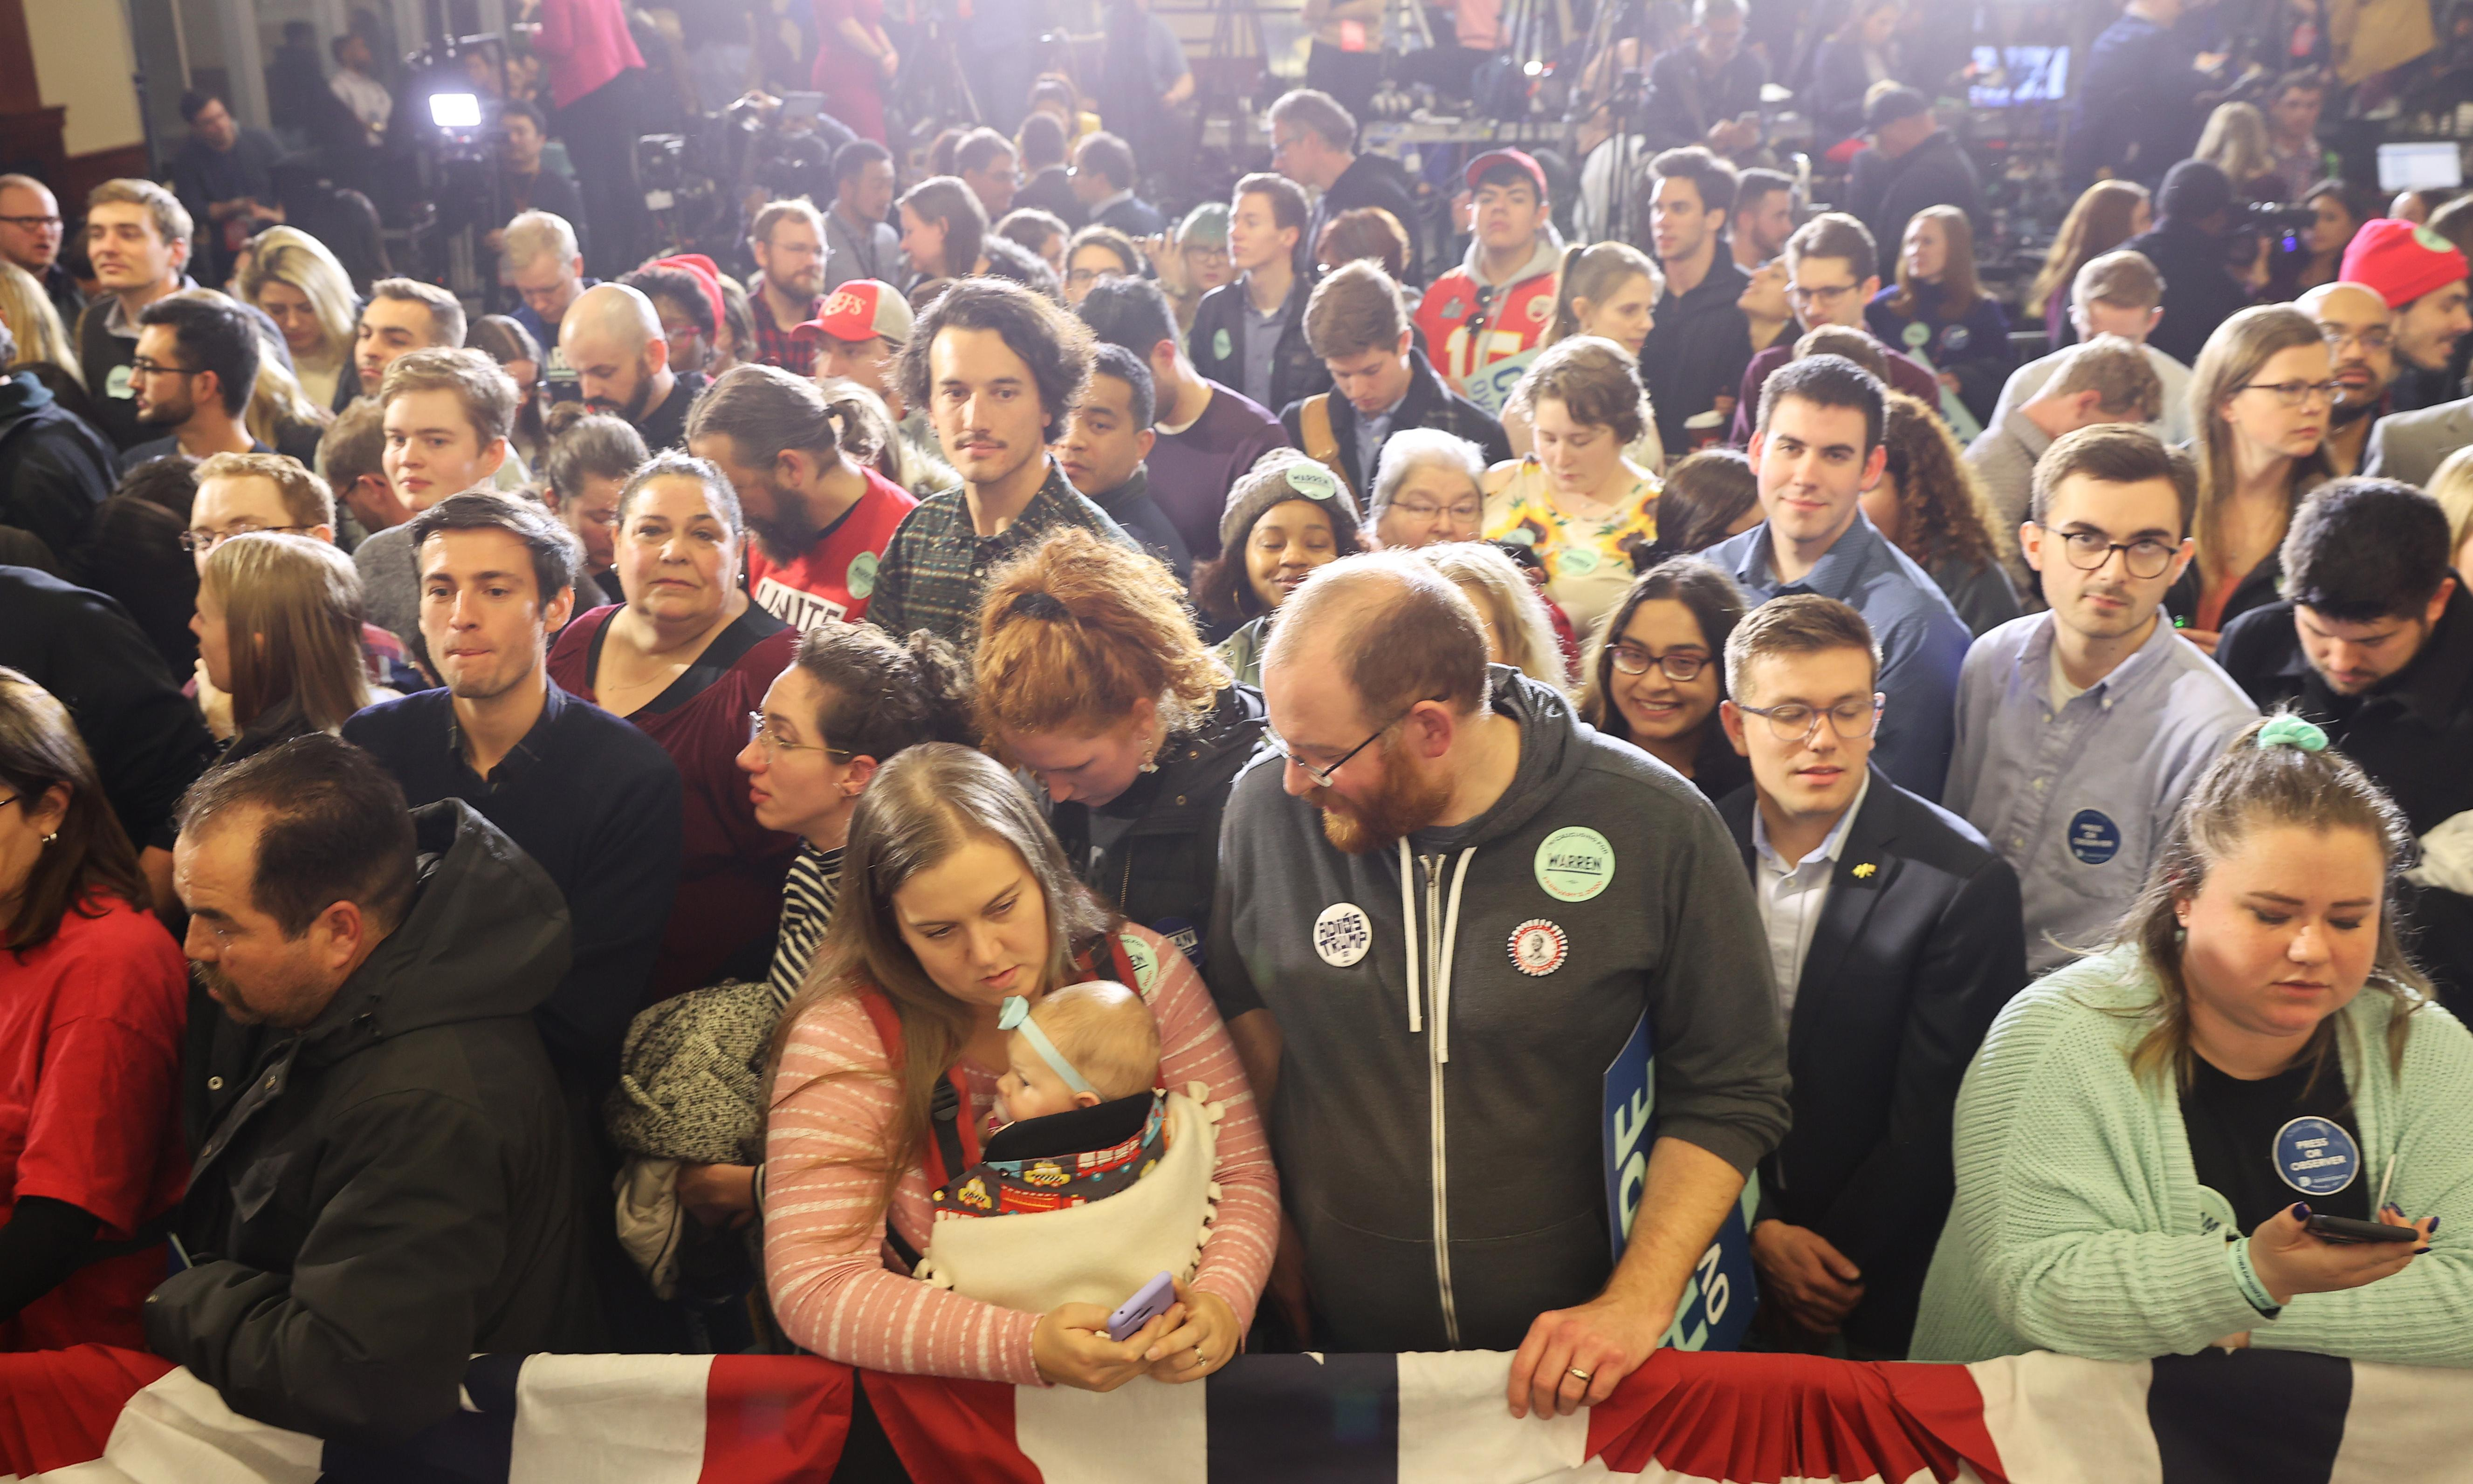 'Iowa, you have shocked the nation': social media reacts to caucus chaos